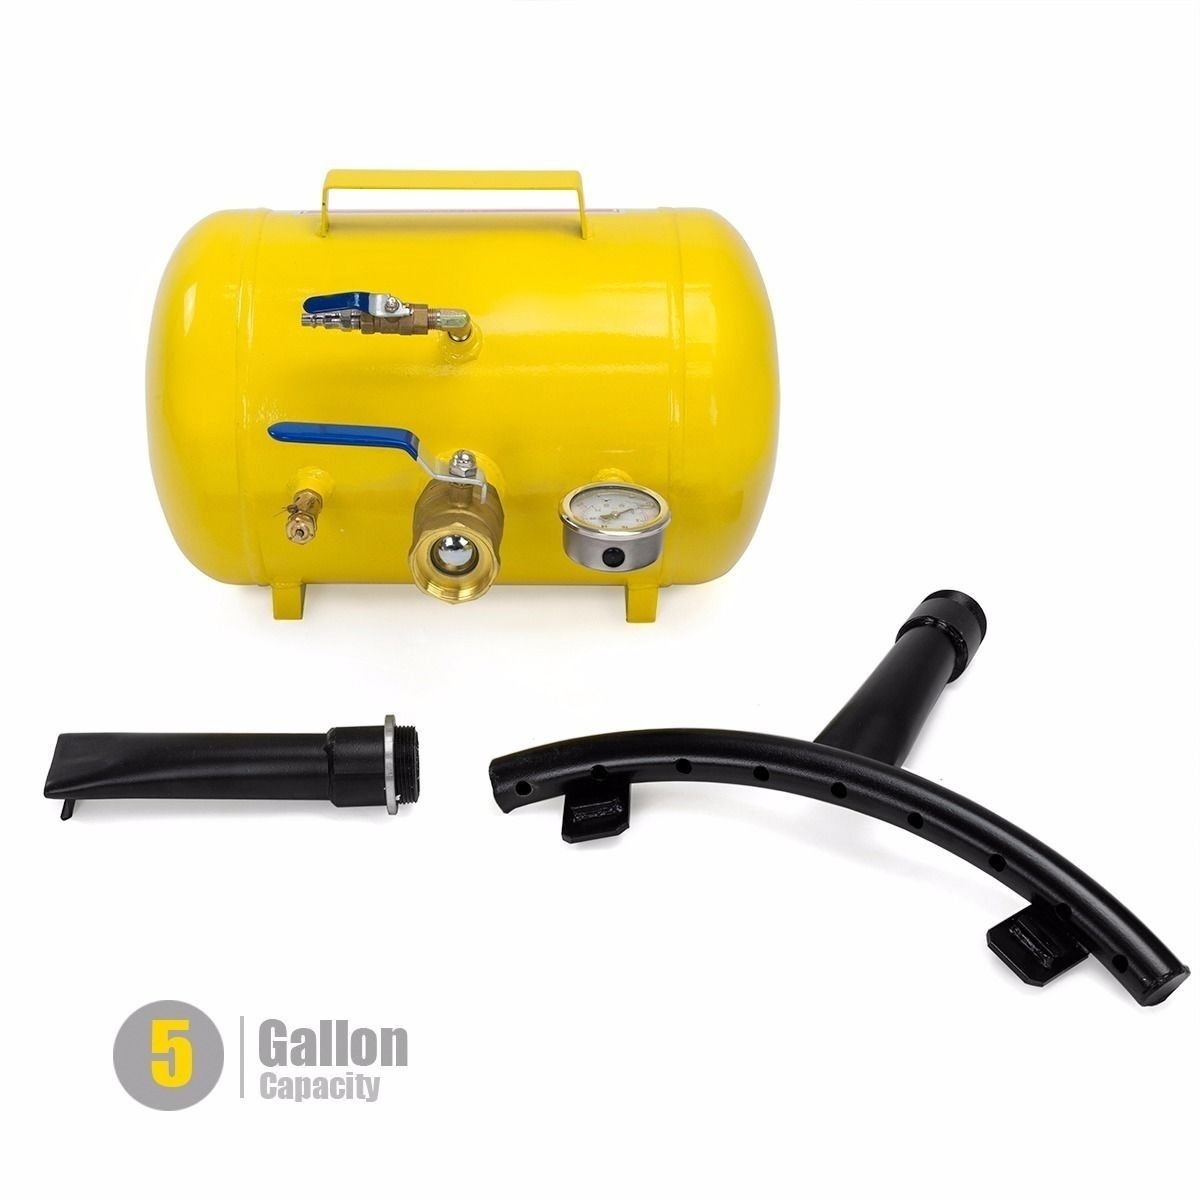 New rapid pump 5 Gallon Air Bead Seater Tire Tool Blaster Wheel Tool shop by MTN Gearsmith (Image #1)